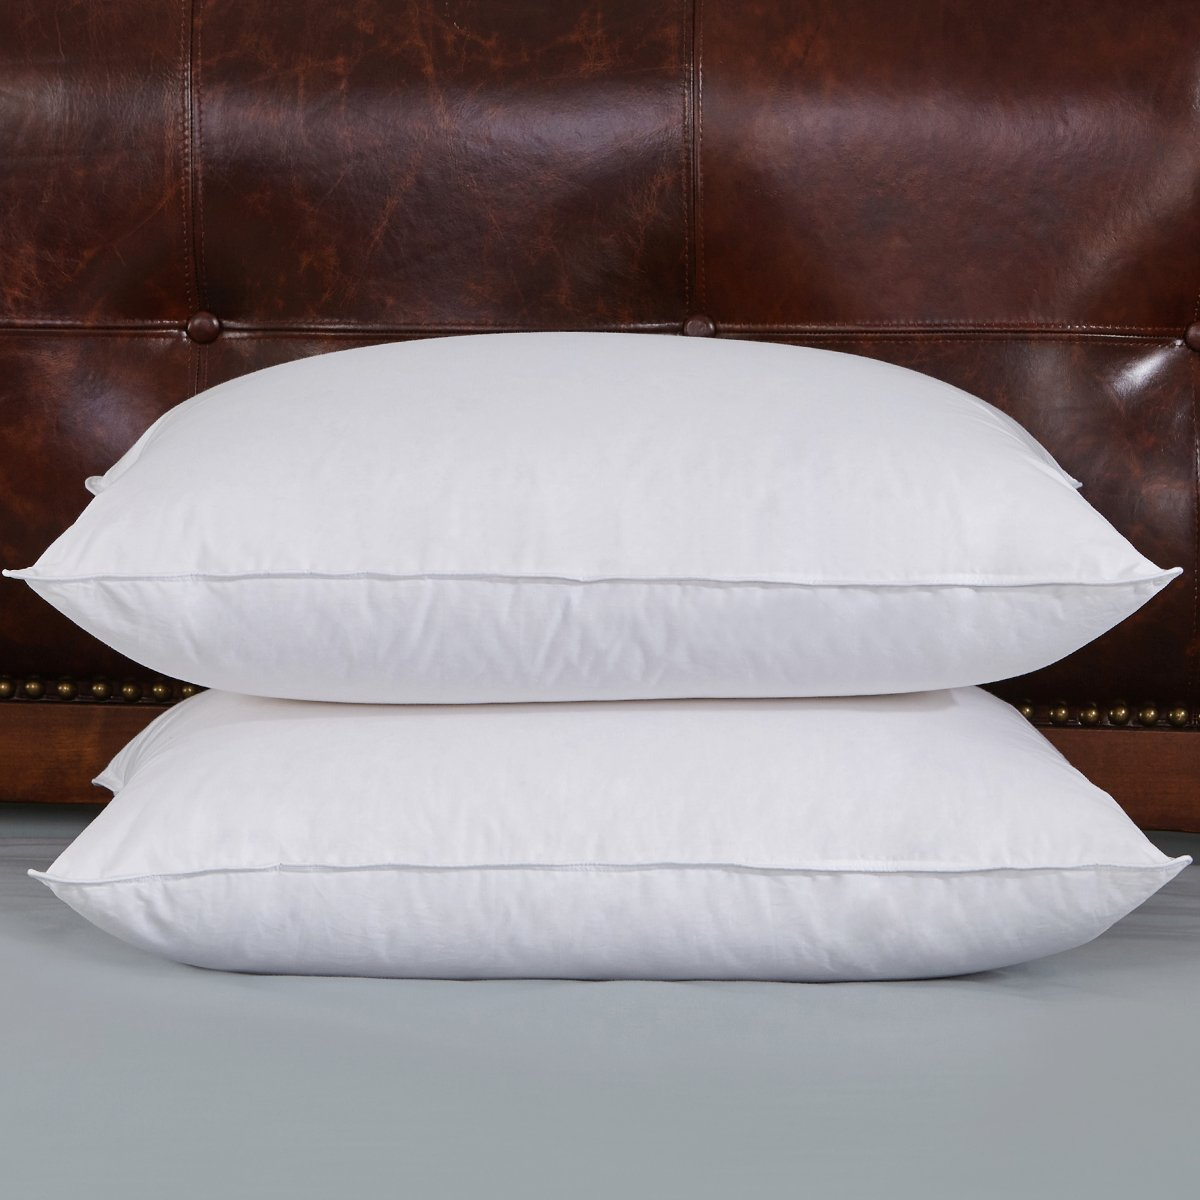 Peace Nest - Down Pillows, Firm 600 Fill Power, King Size (2PACK)